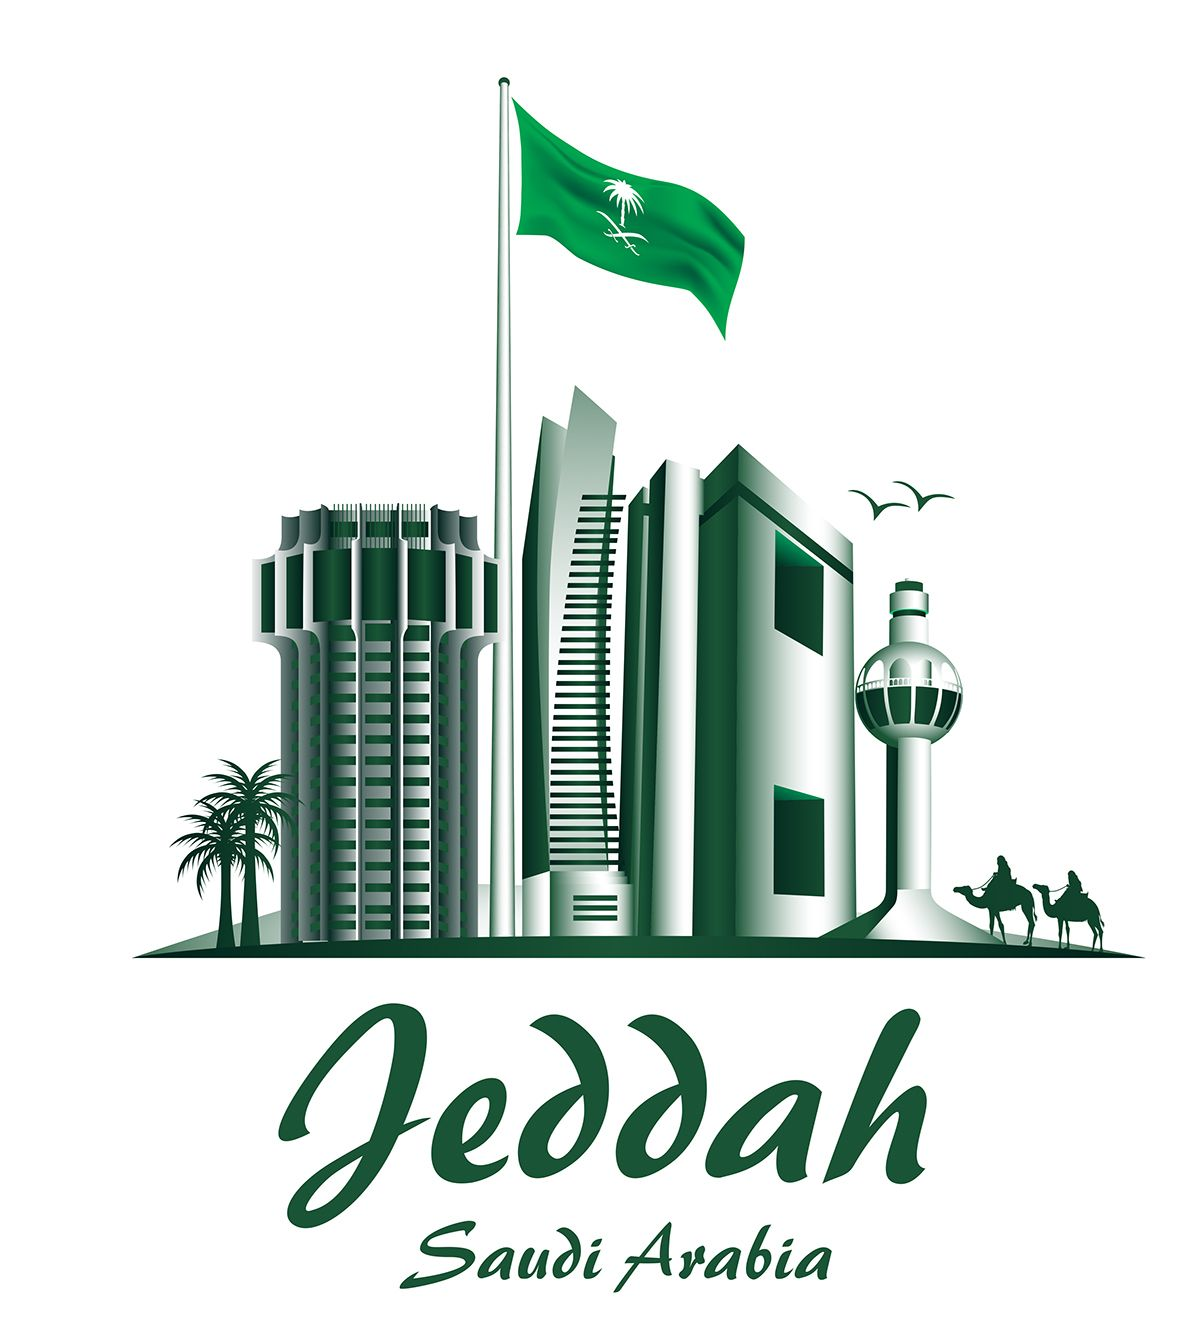 Illustration Famous Building In Middel East On Behance Famous Buildings Decorative Paper Crafts National Day Saudi